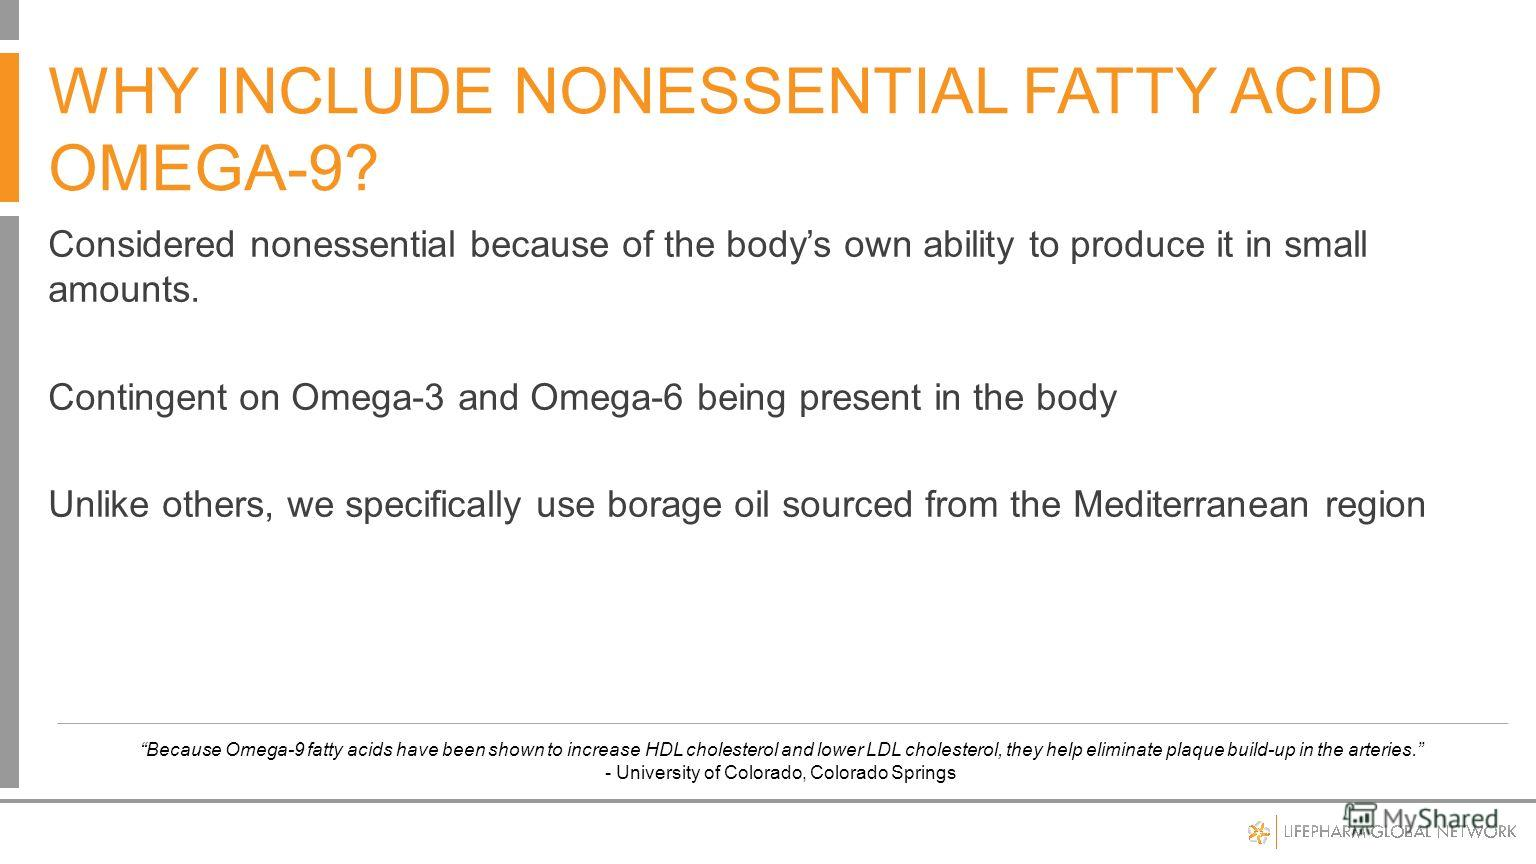 Considered nonessential because of the bodys own ability to produce it in small amounts. Contingent on Omega-3 and Omega-6 being present in the body Unlike others, we specifically use borage oil sourced from the Mediterranean region Because Omega-9 f